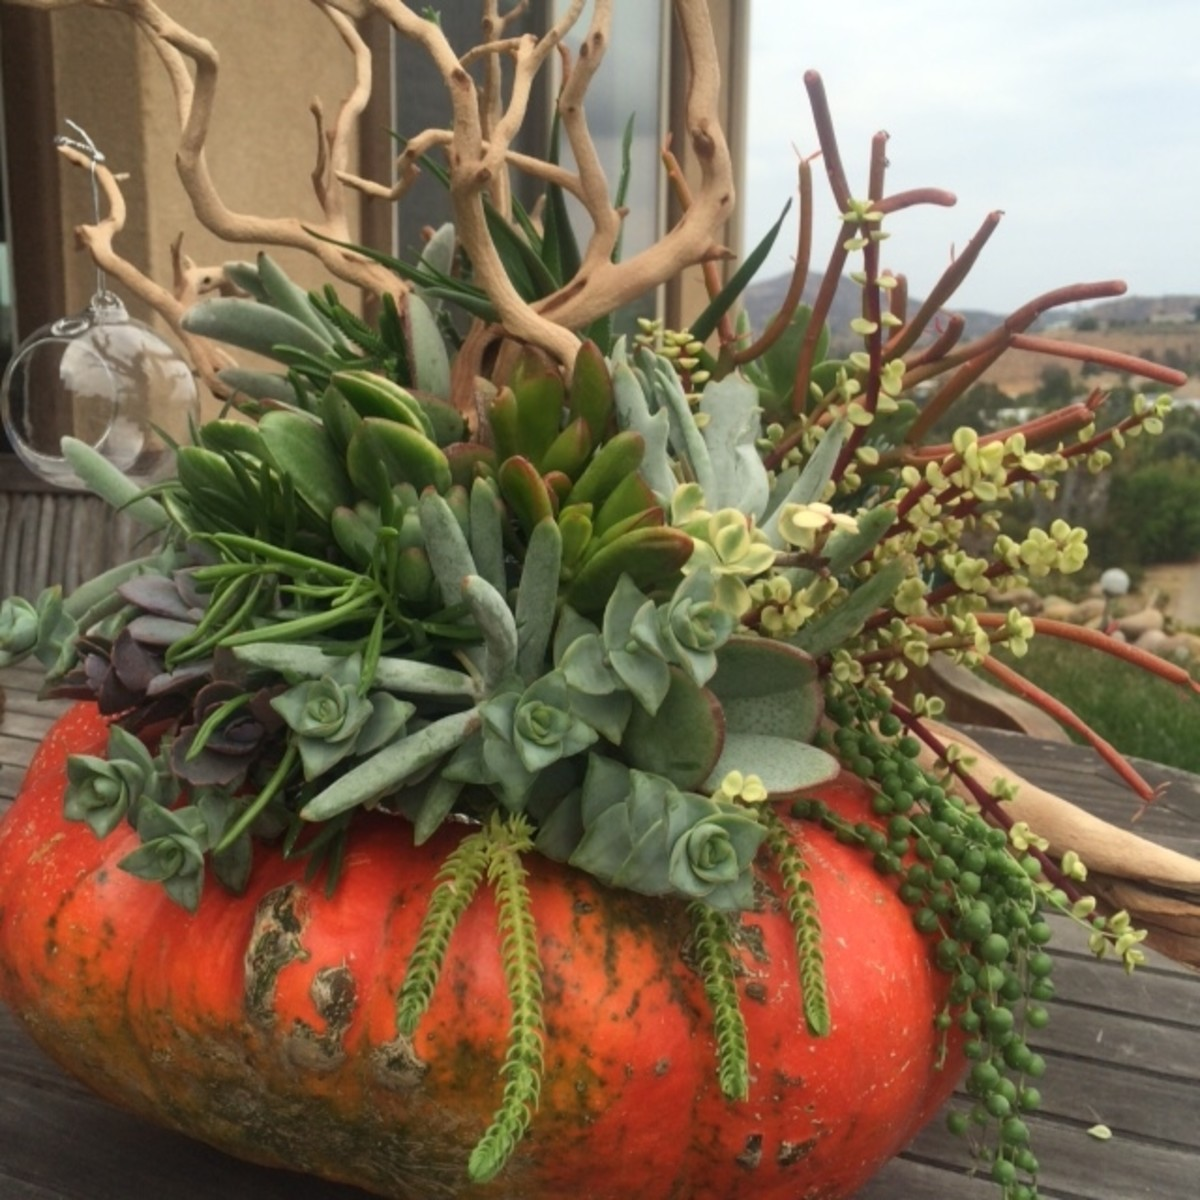 Thanksgiving Centerpieces Using Succulents and Drought-Resistant Plants